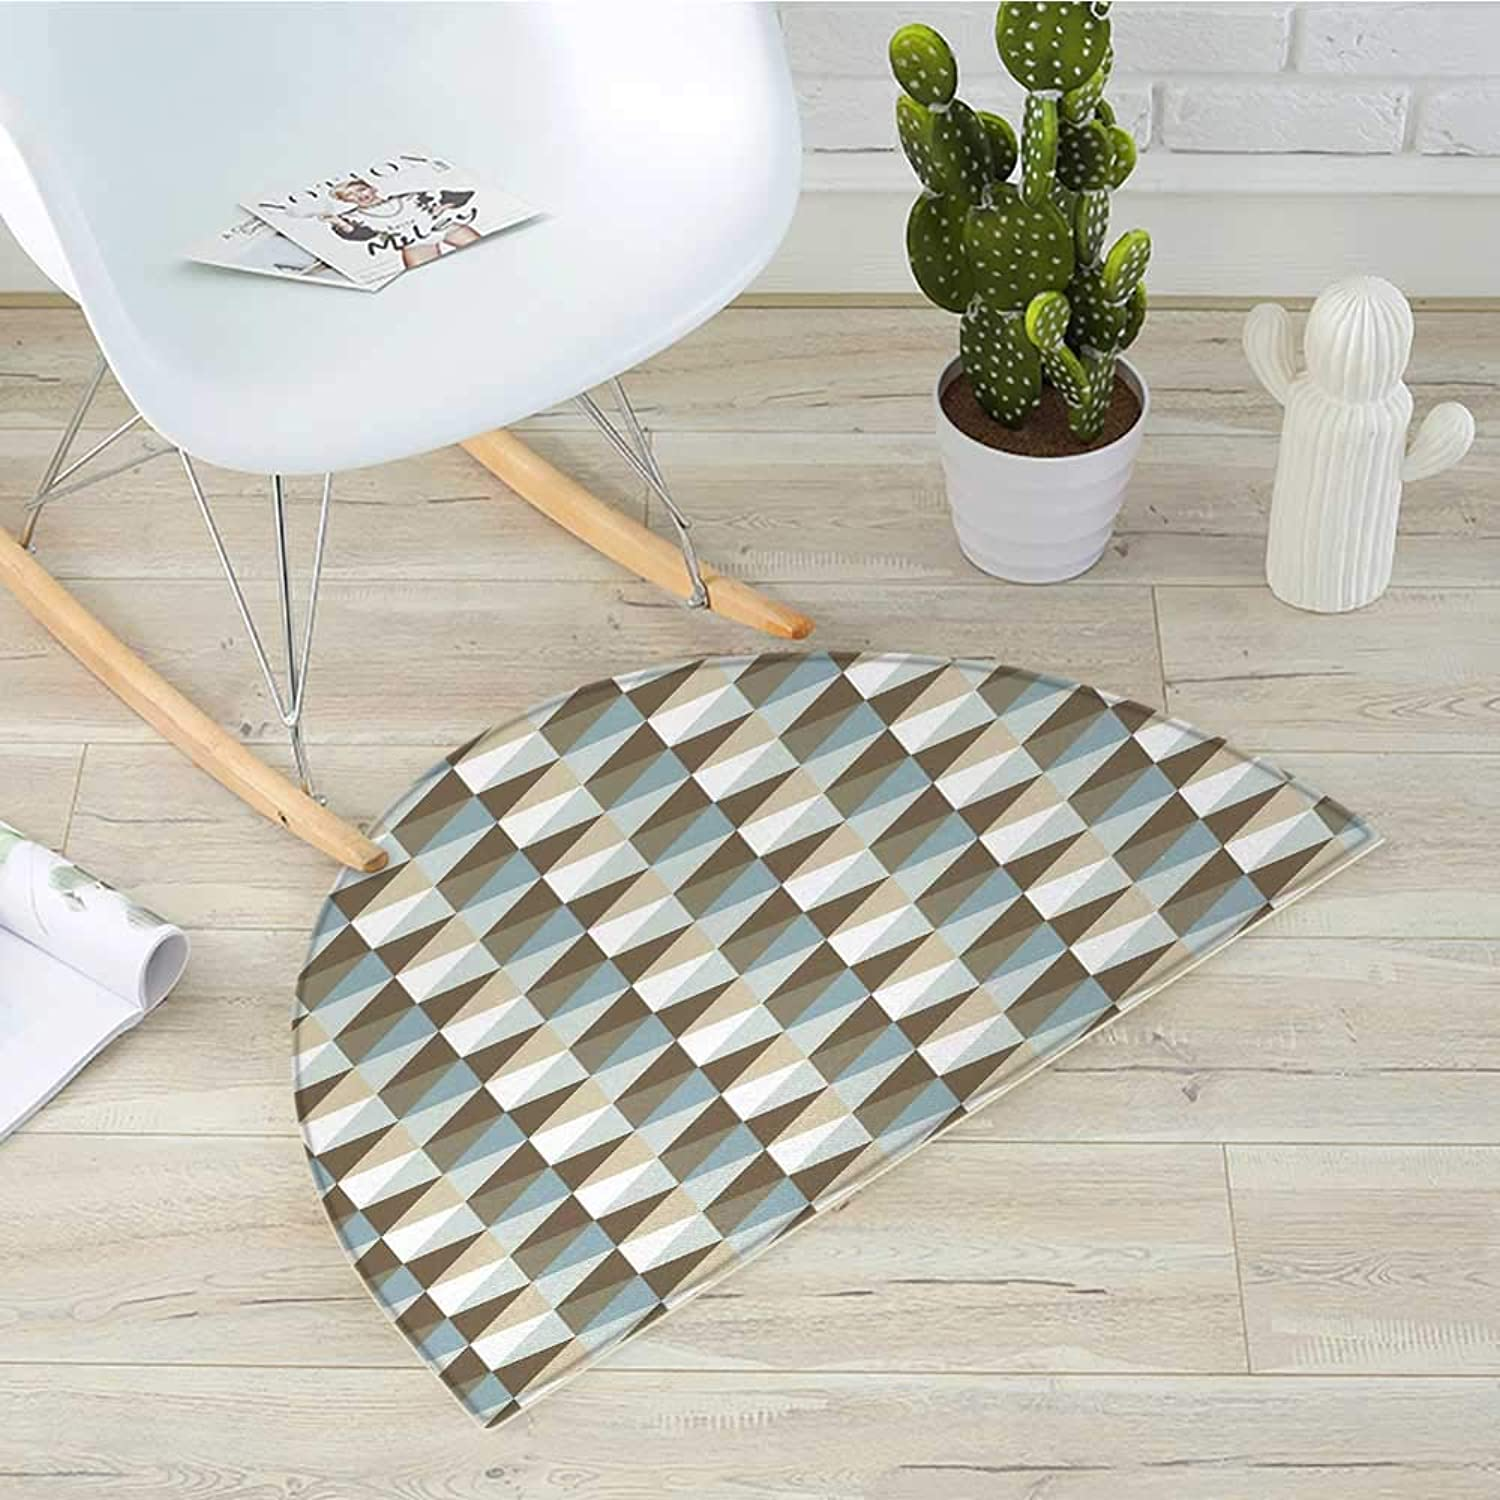 Geometric Half Round Door mats Abstract Triangles Chevron Three Dimensional Effect Shapes with Soft colors Image Bathroom Mat H 39.3  xD 59  Multicolor